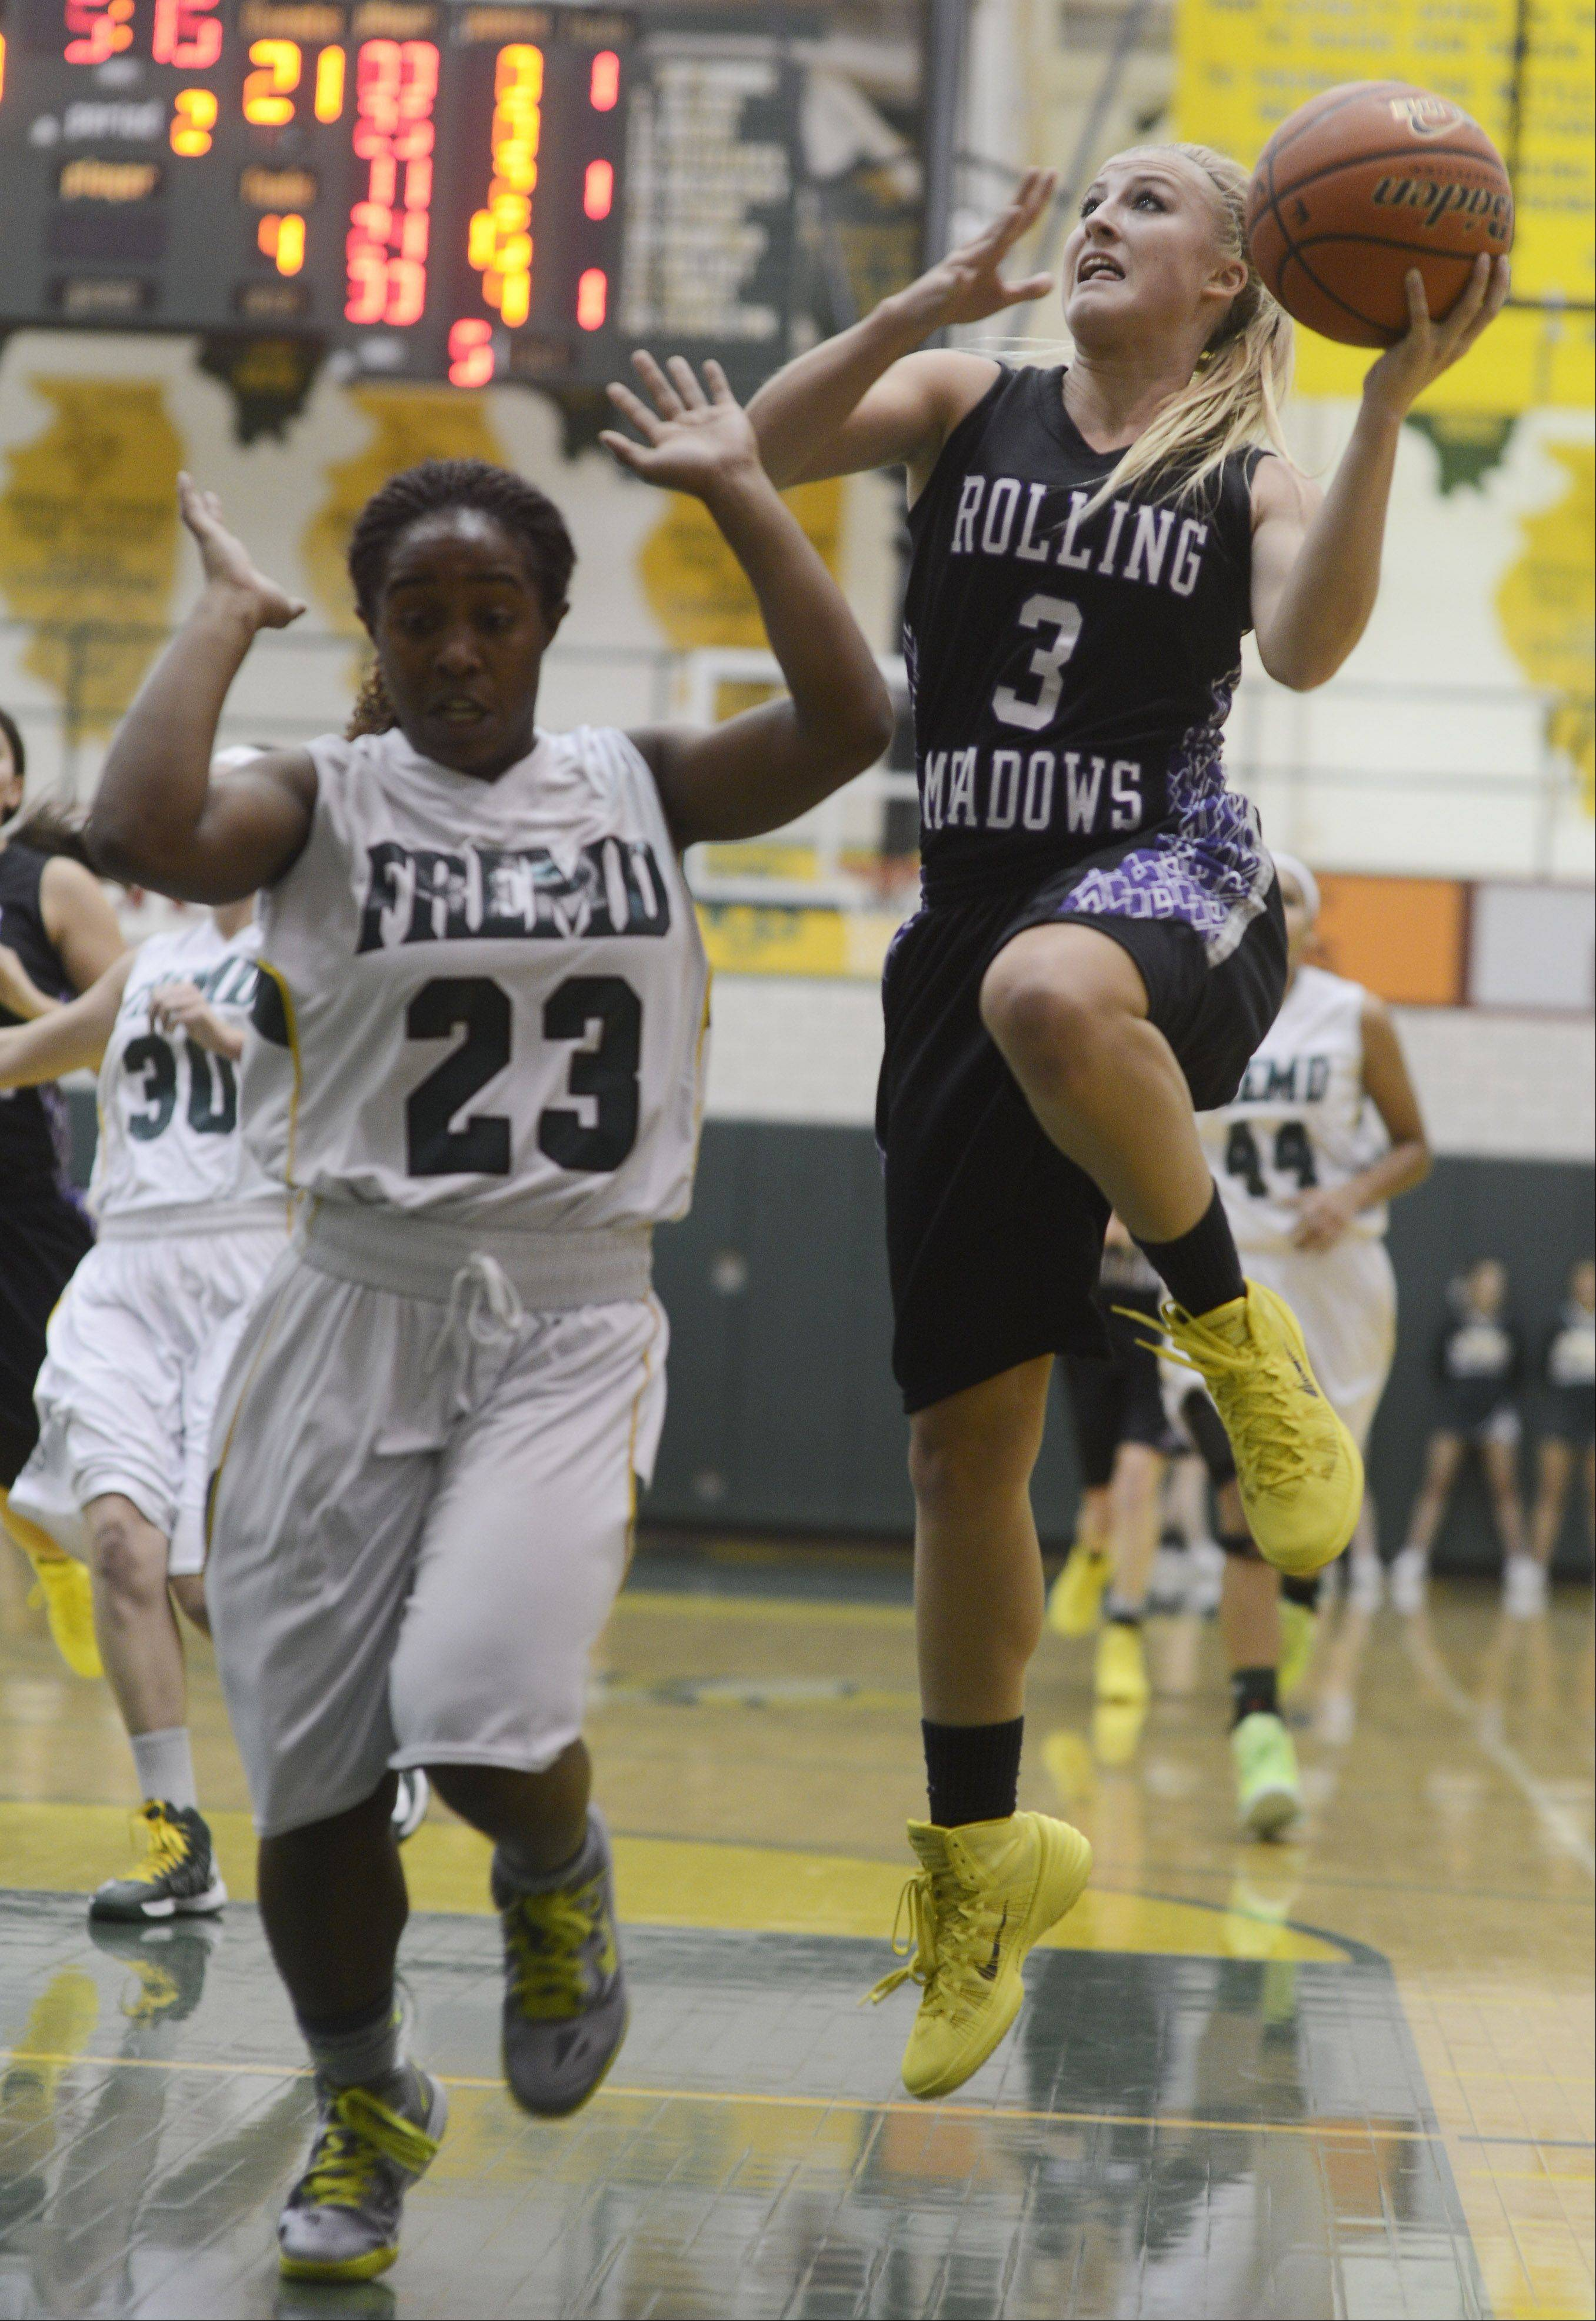 Fremd's Brianna Lewis, left, tries to avoid contact with Rolling Meadows' Jackie Kemph during Tuesday's game.